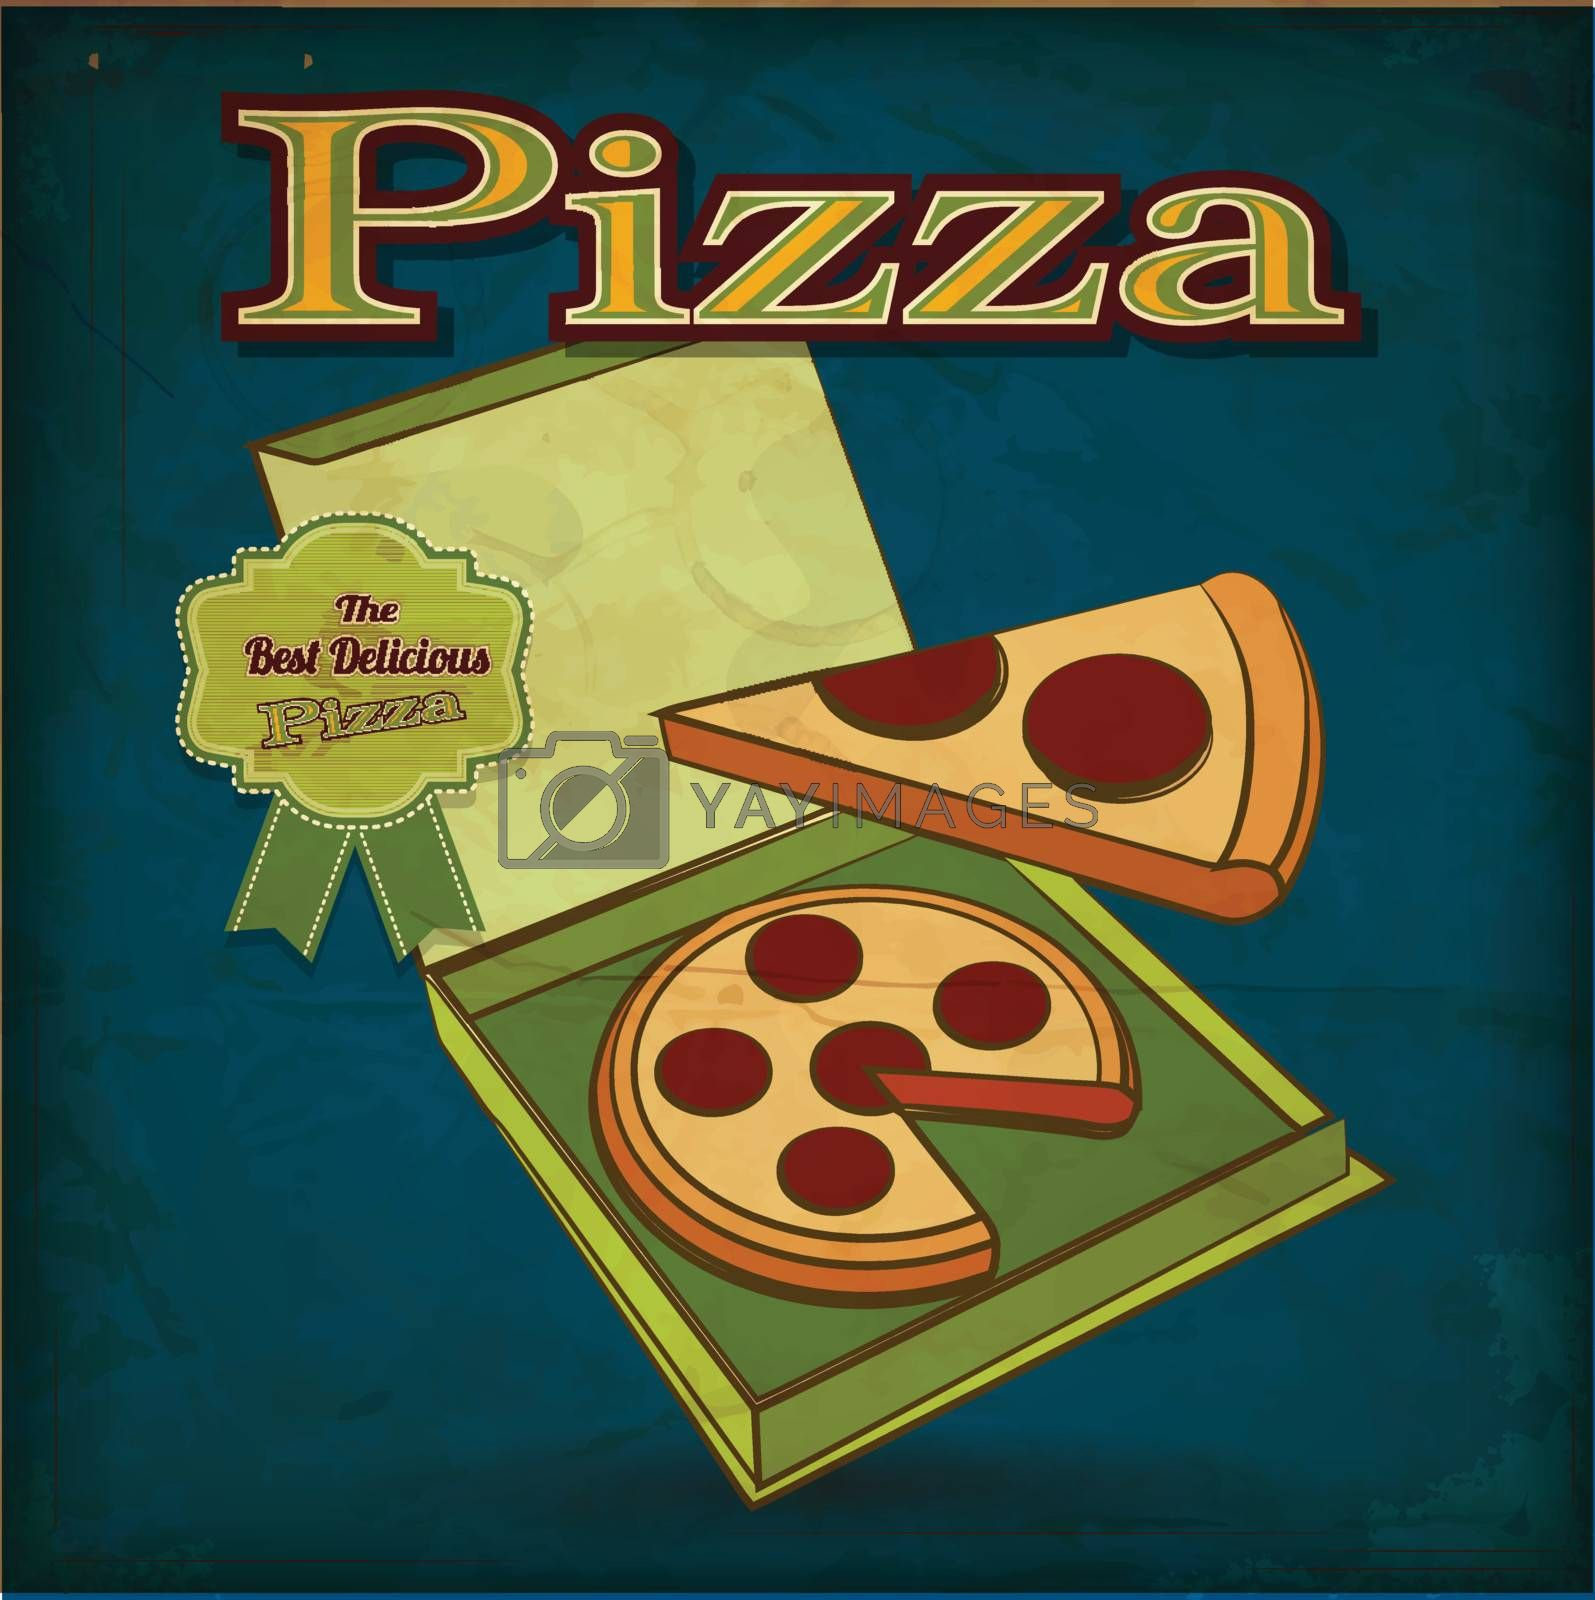 poster Retro Vintage Pizza with Grunge Effect